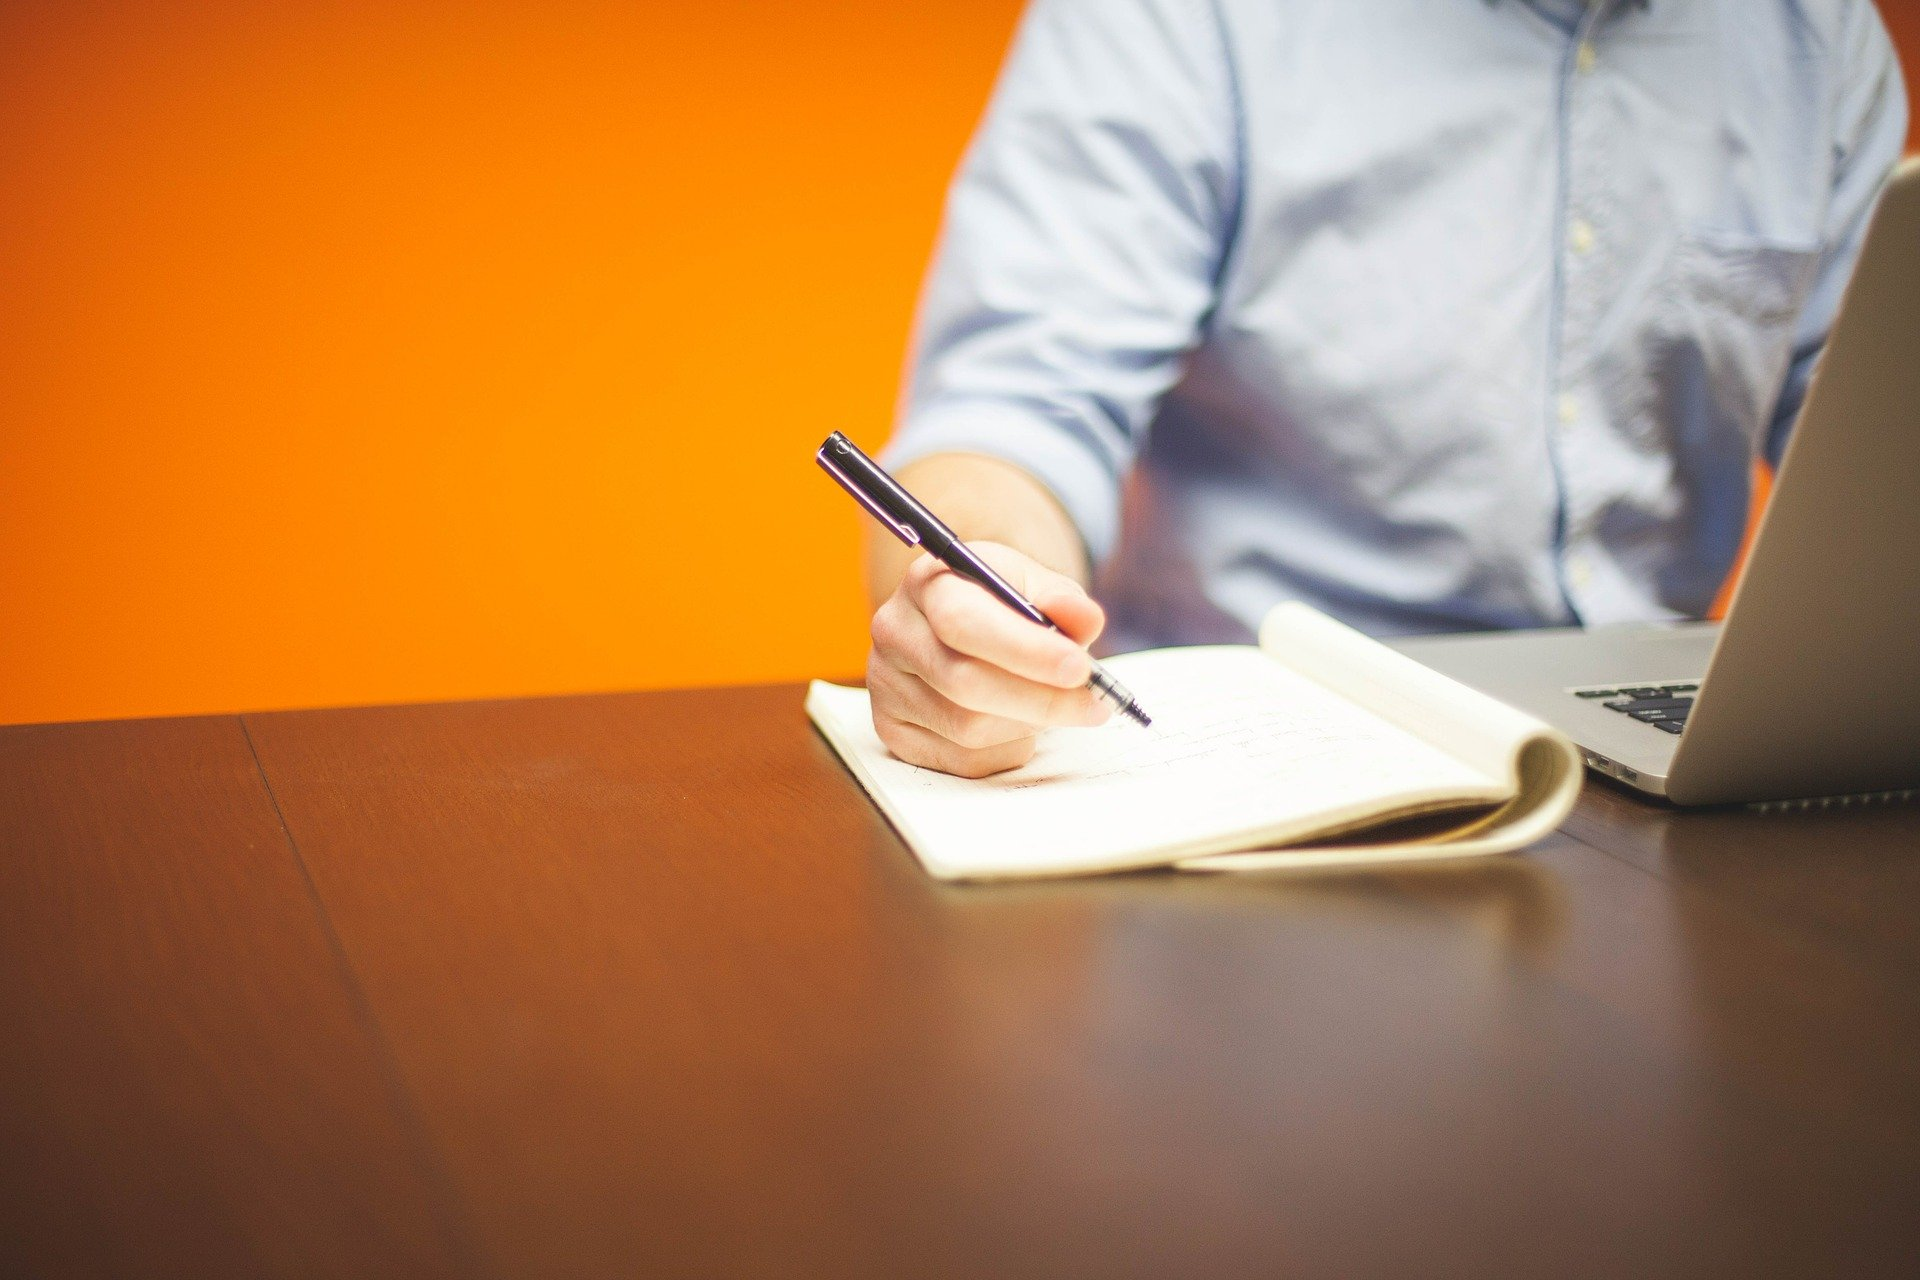 Procurement Director writing on paper in front of laptop